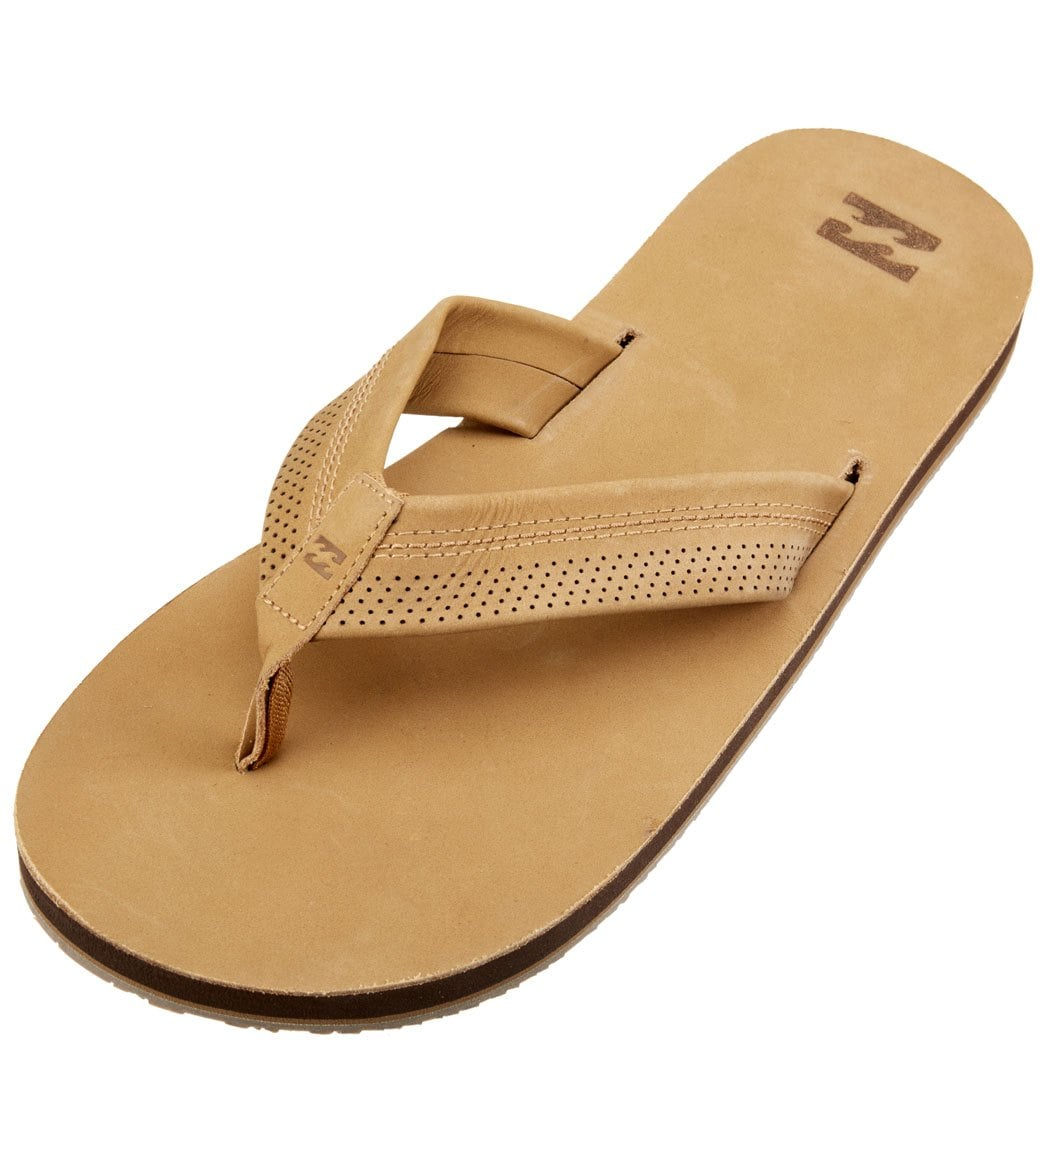 5356b105c96 Billabong Men s All Day Leather Sandal at SwimOutlet.com - Free Shipping